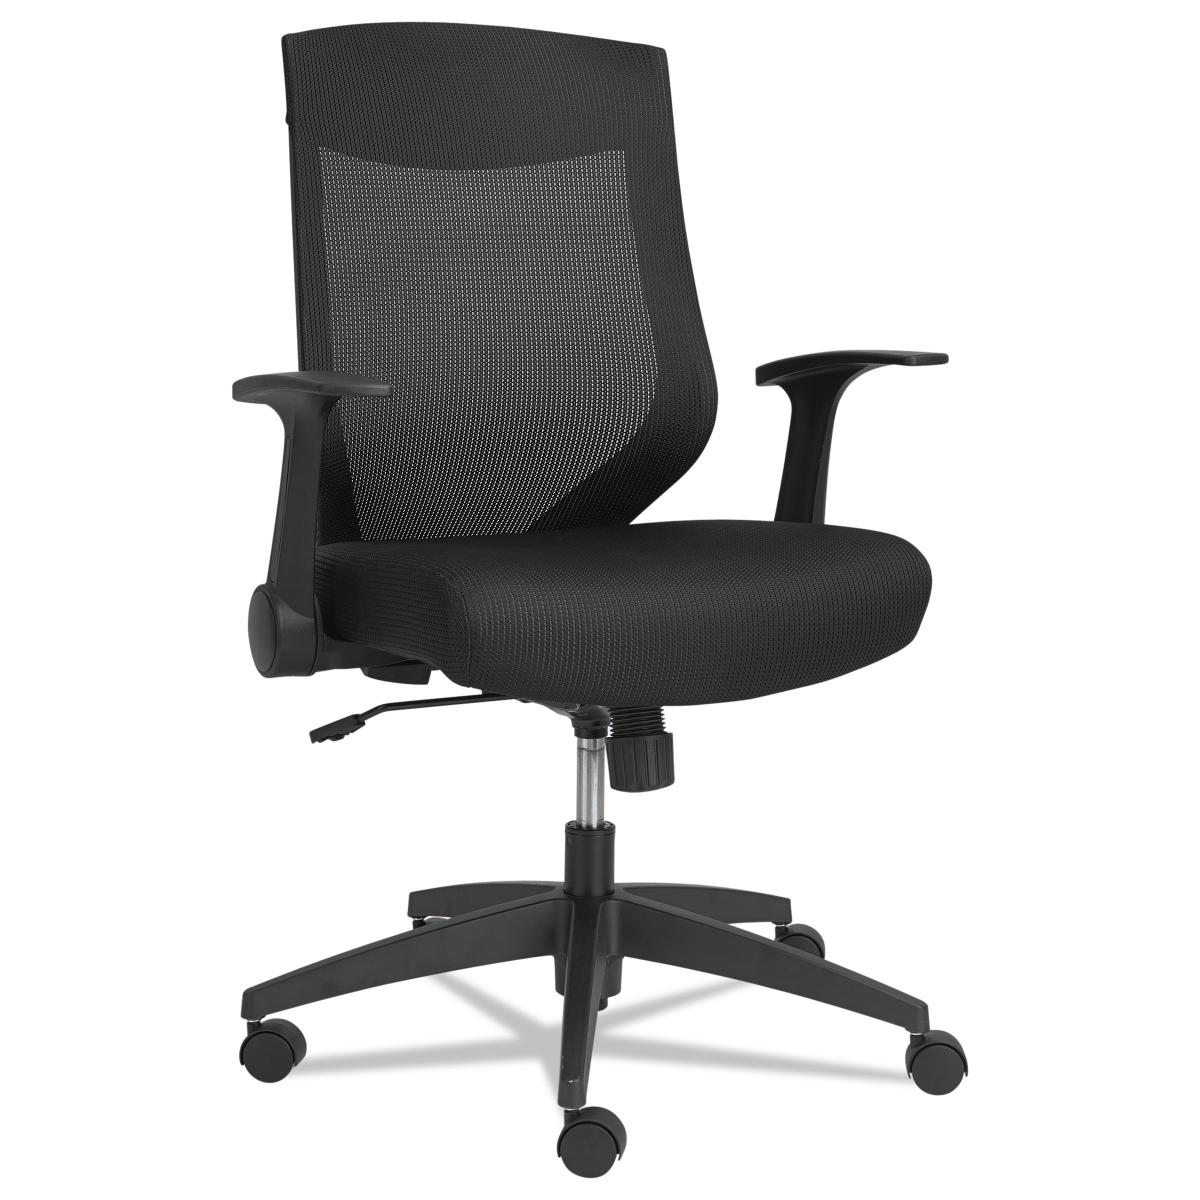 Alera Office Chairs Swivel Leather Office Chairs By Alera Medline Industries Inc